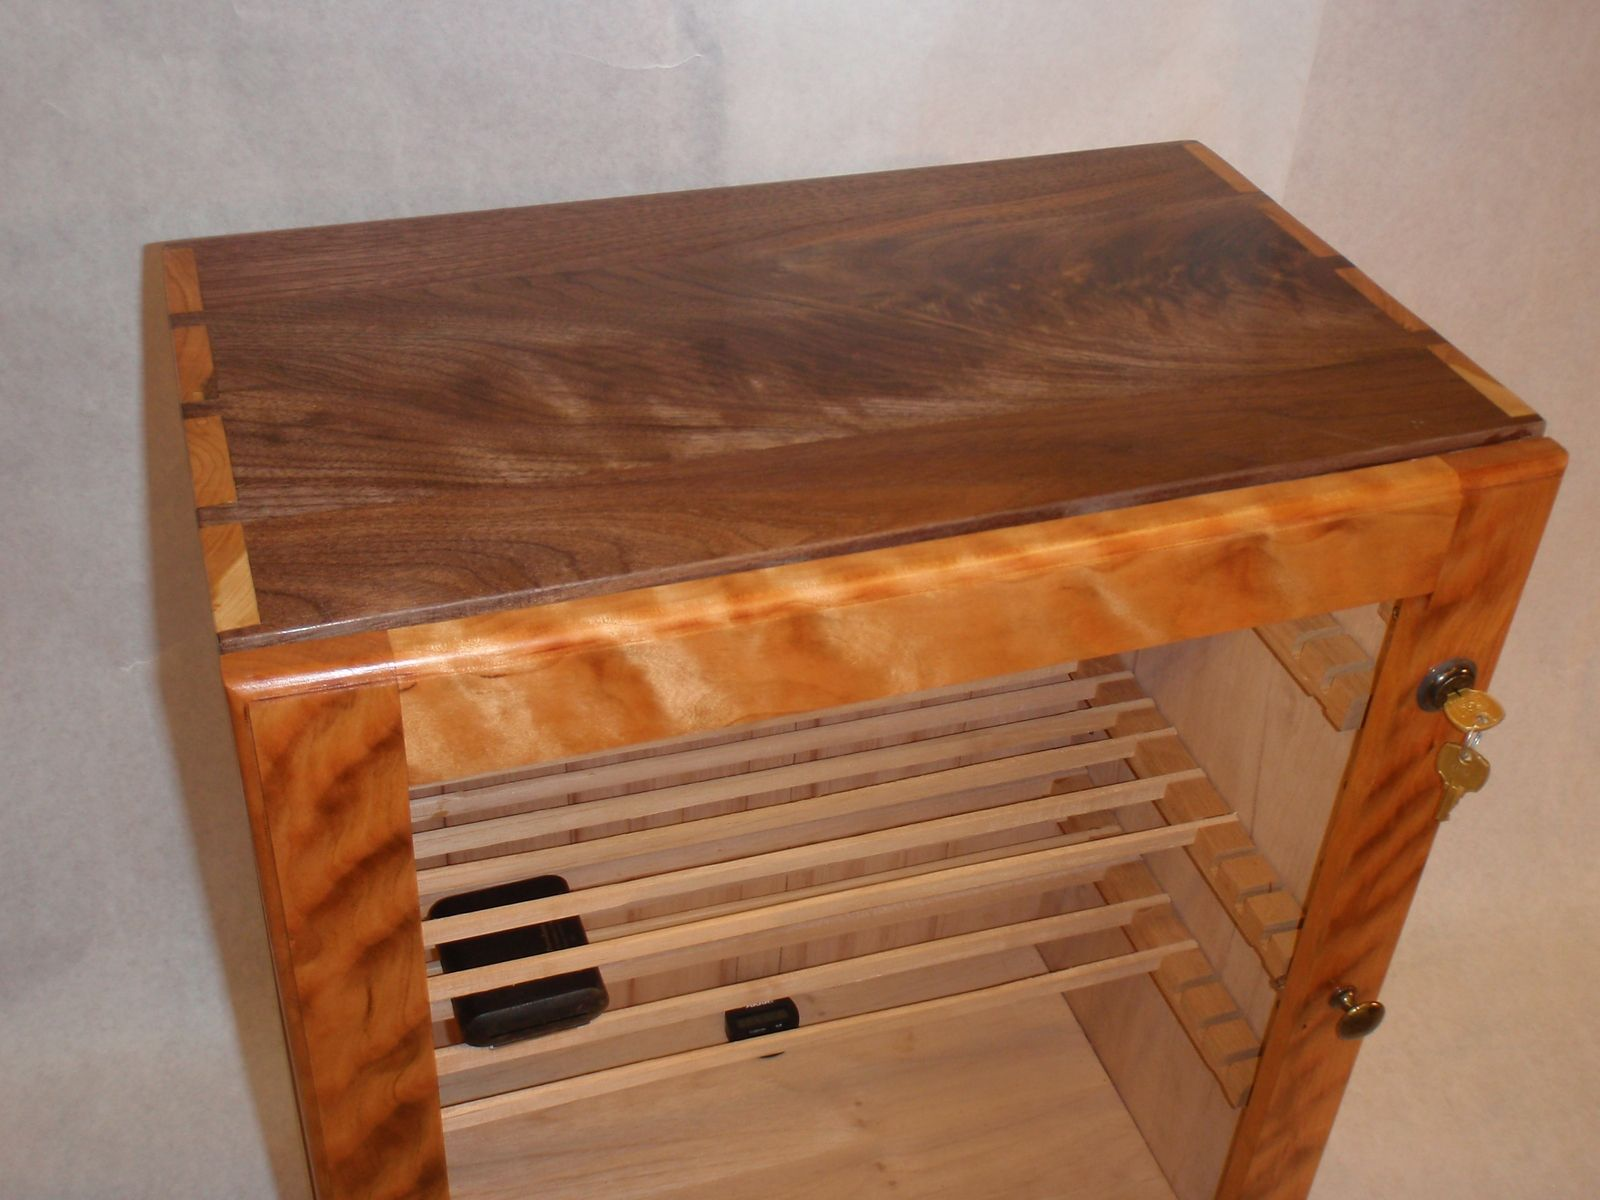 Handmade cigar humidor by custom furniture creations for Custom made furniture